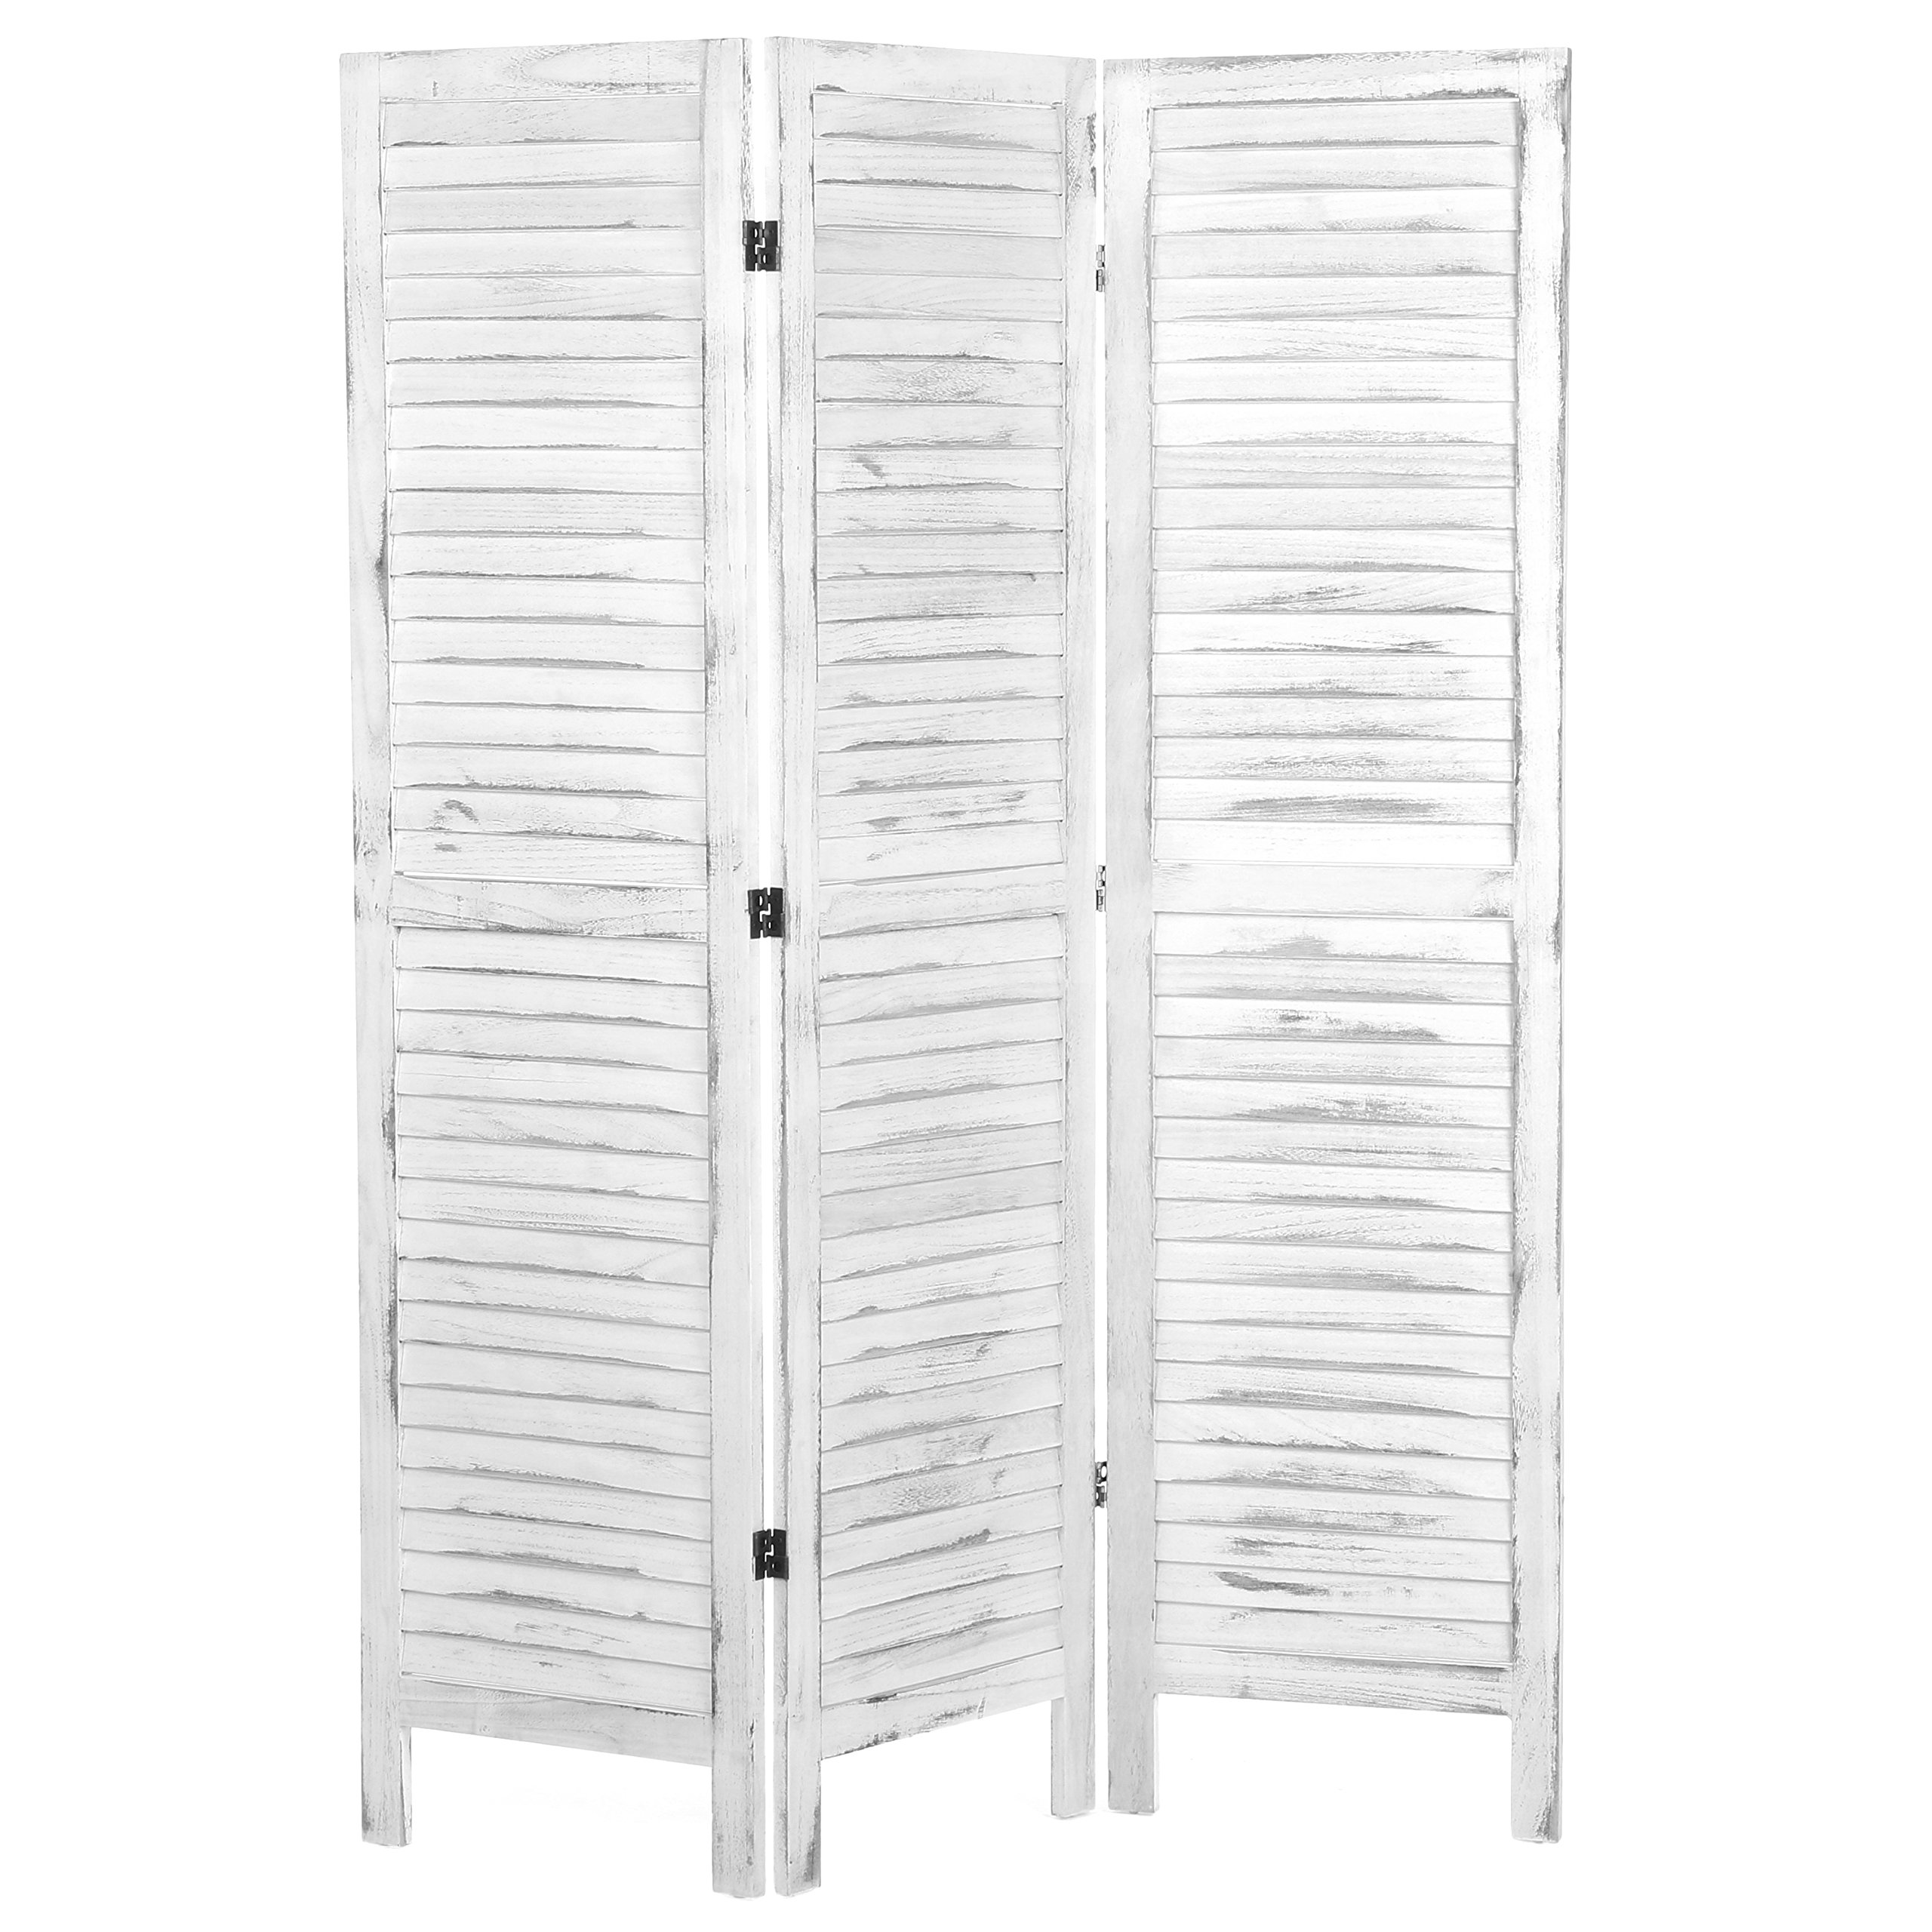 MyGift Whitewashed Wood 3 Panel Screen, Folding Louvered Room Divider by MyGift (Image #1)